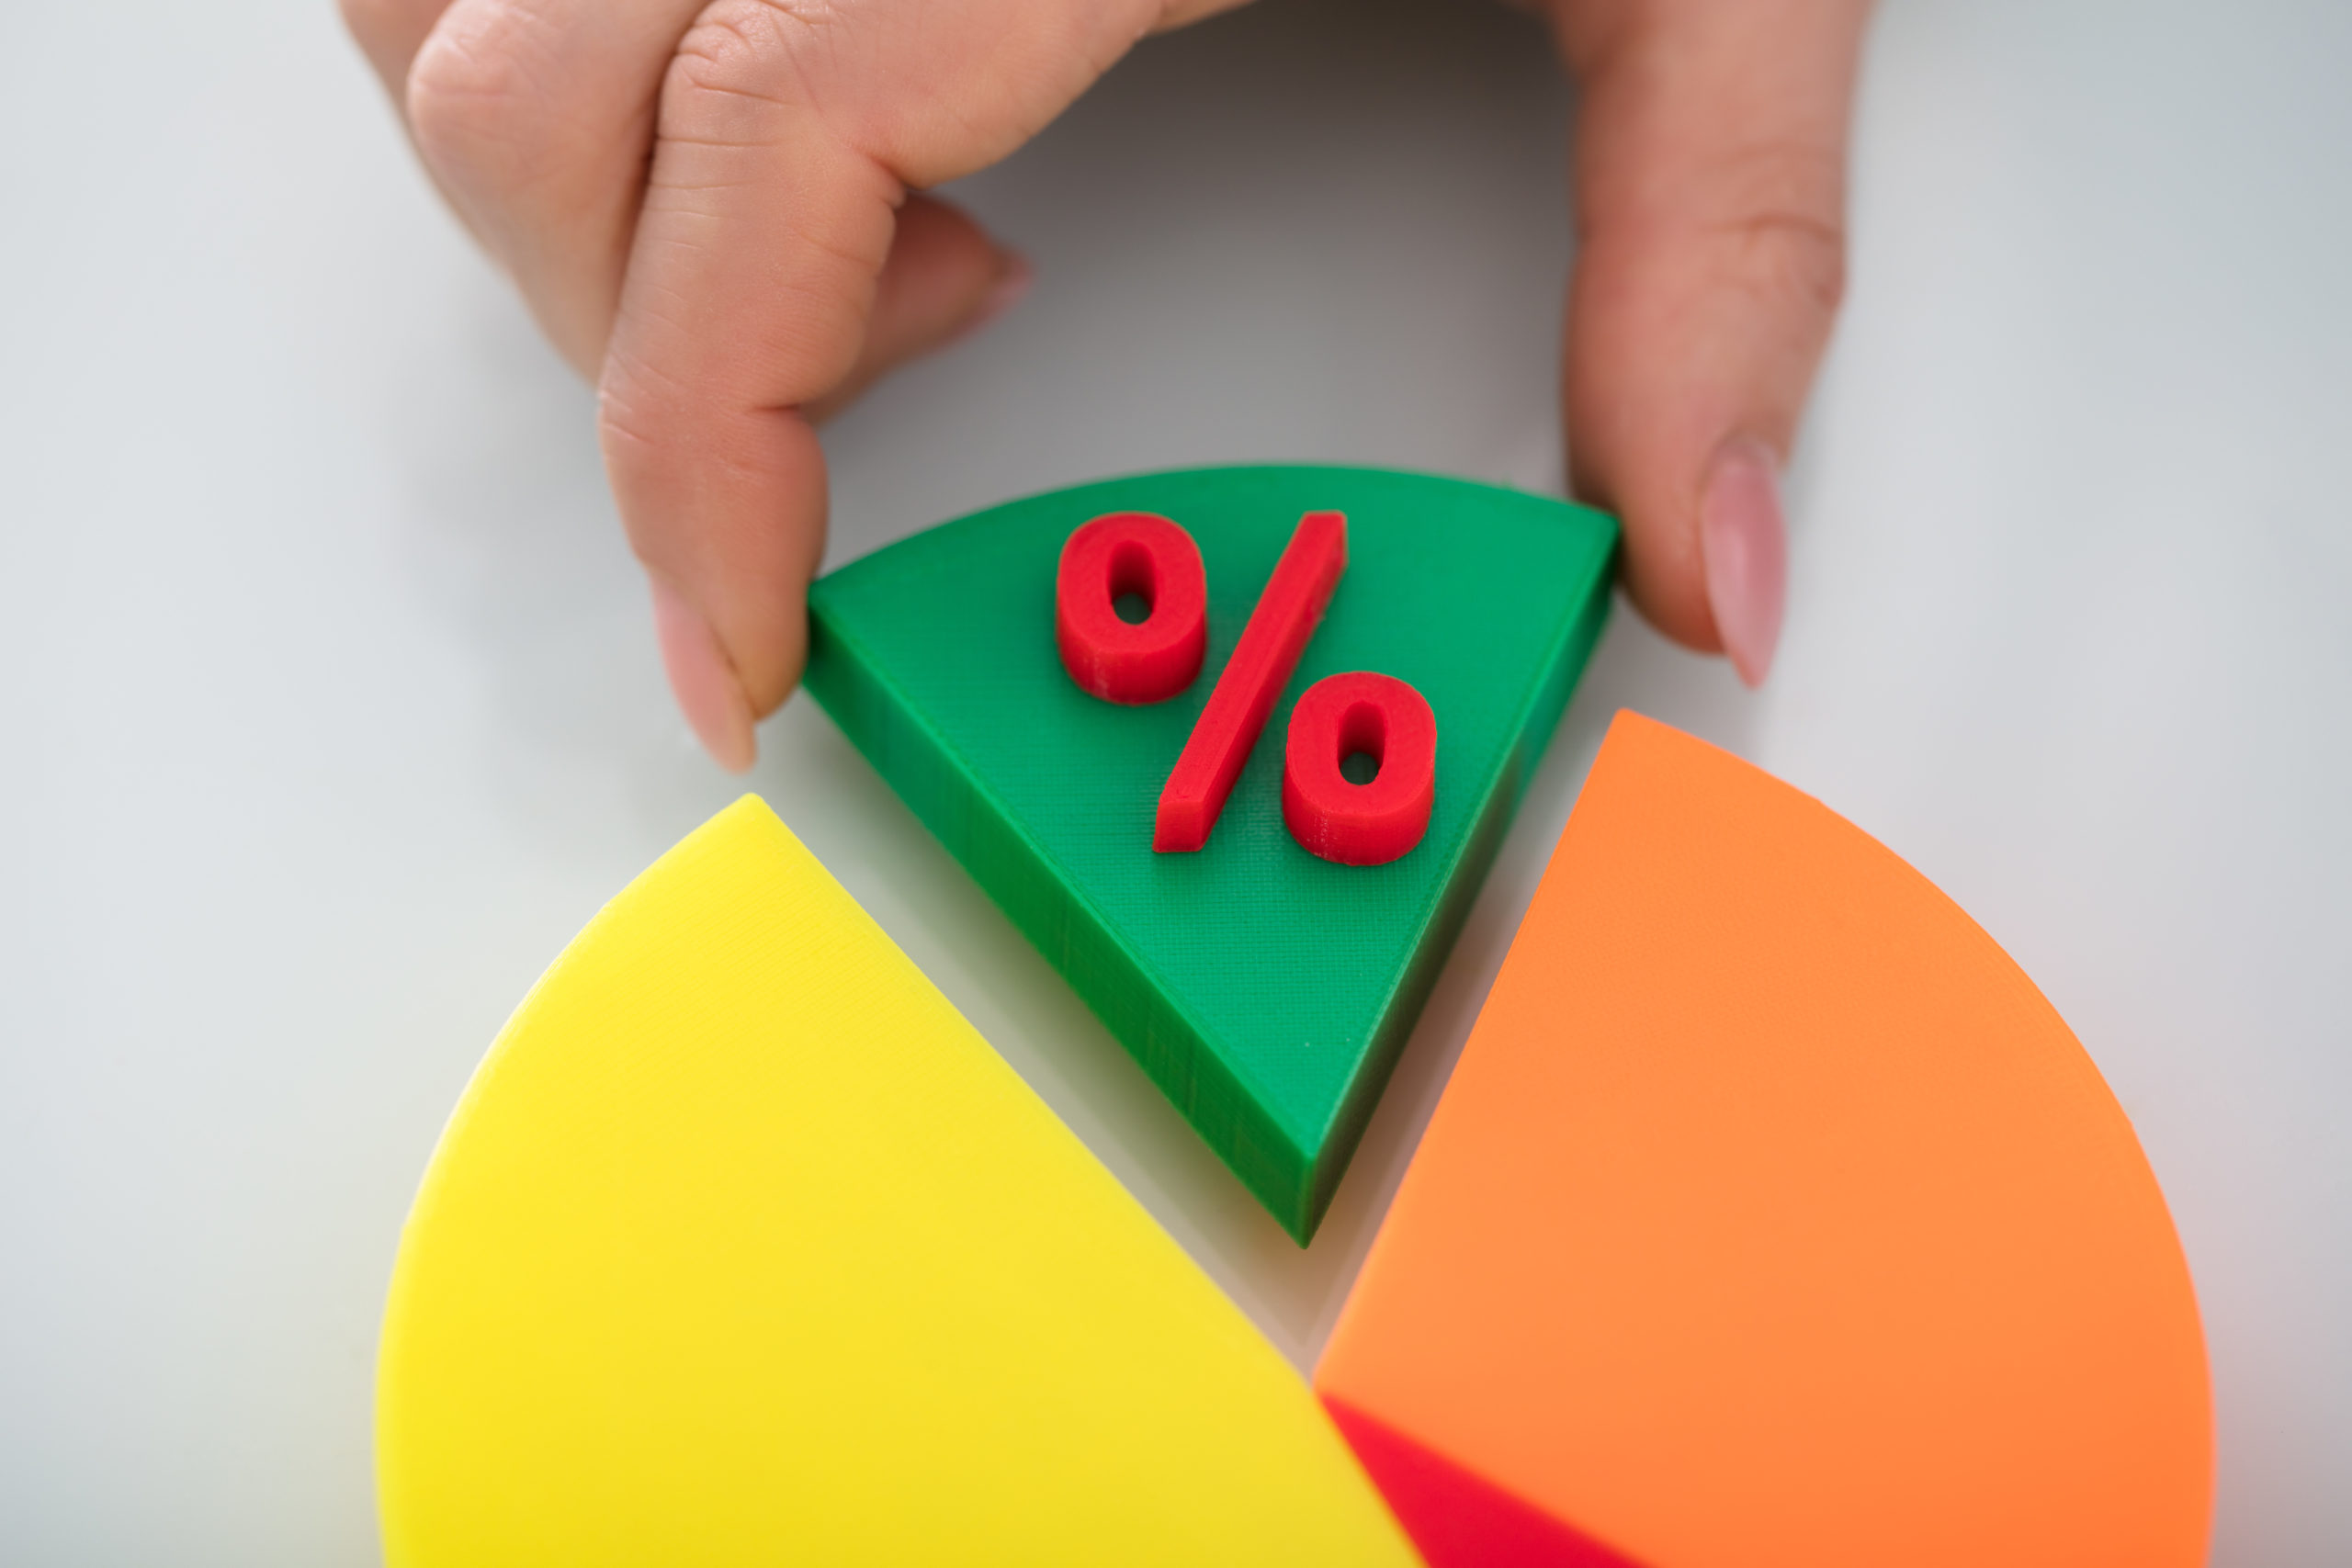 Close-up Of A Person's Finger Taking Green Piece Of Pie Chart With Red Percentage Symbol